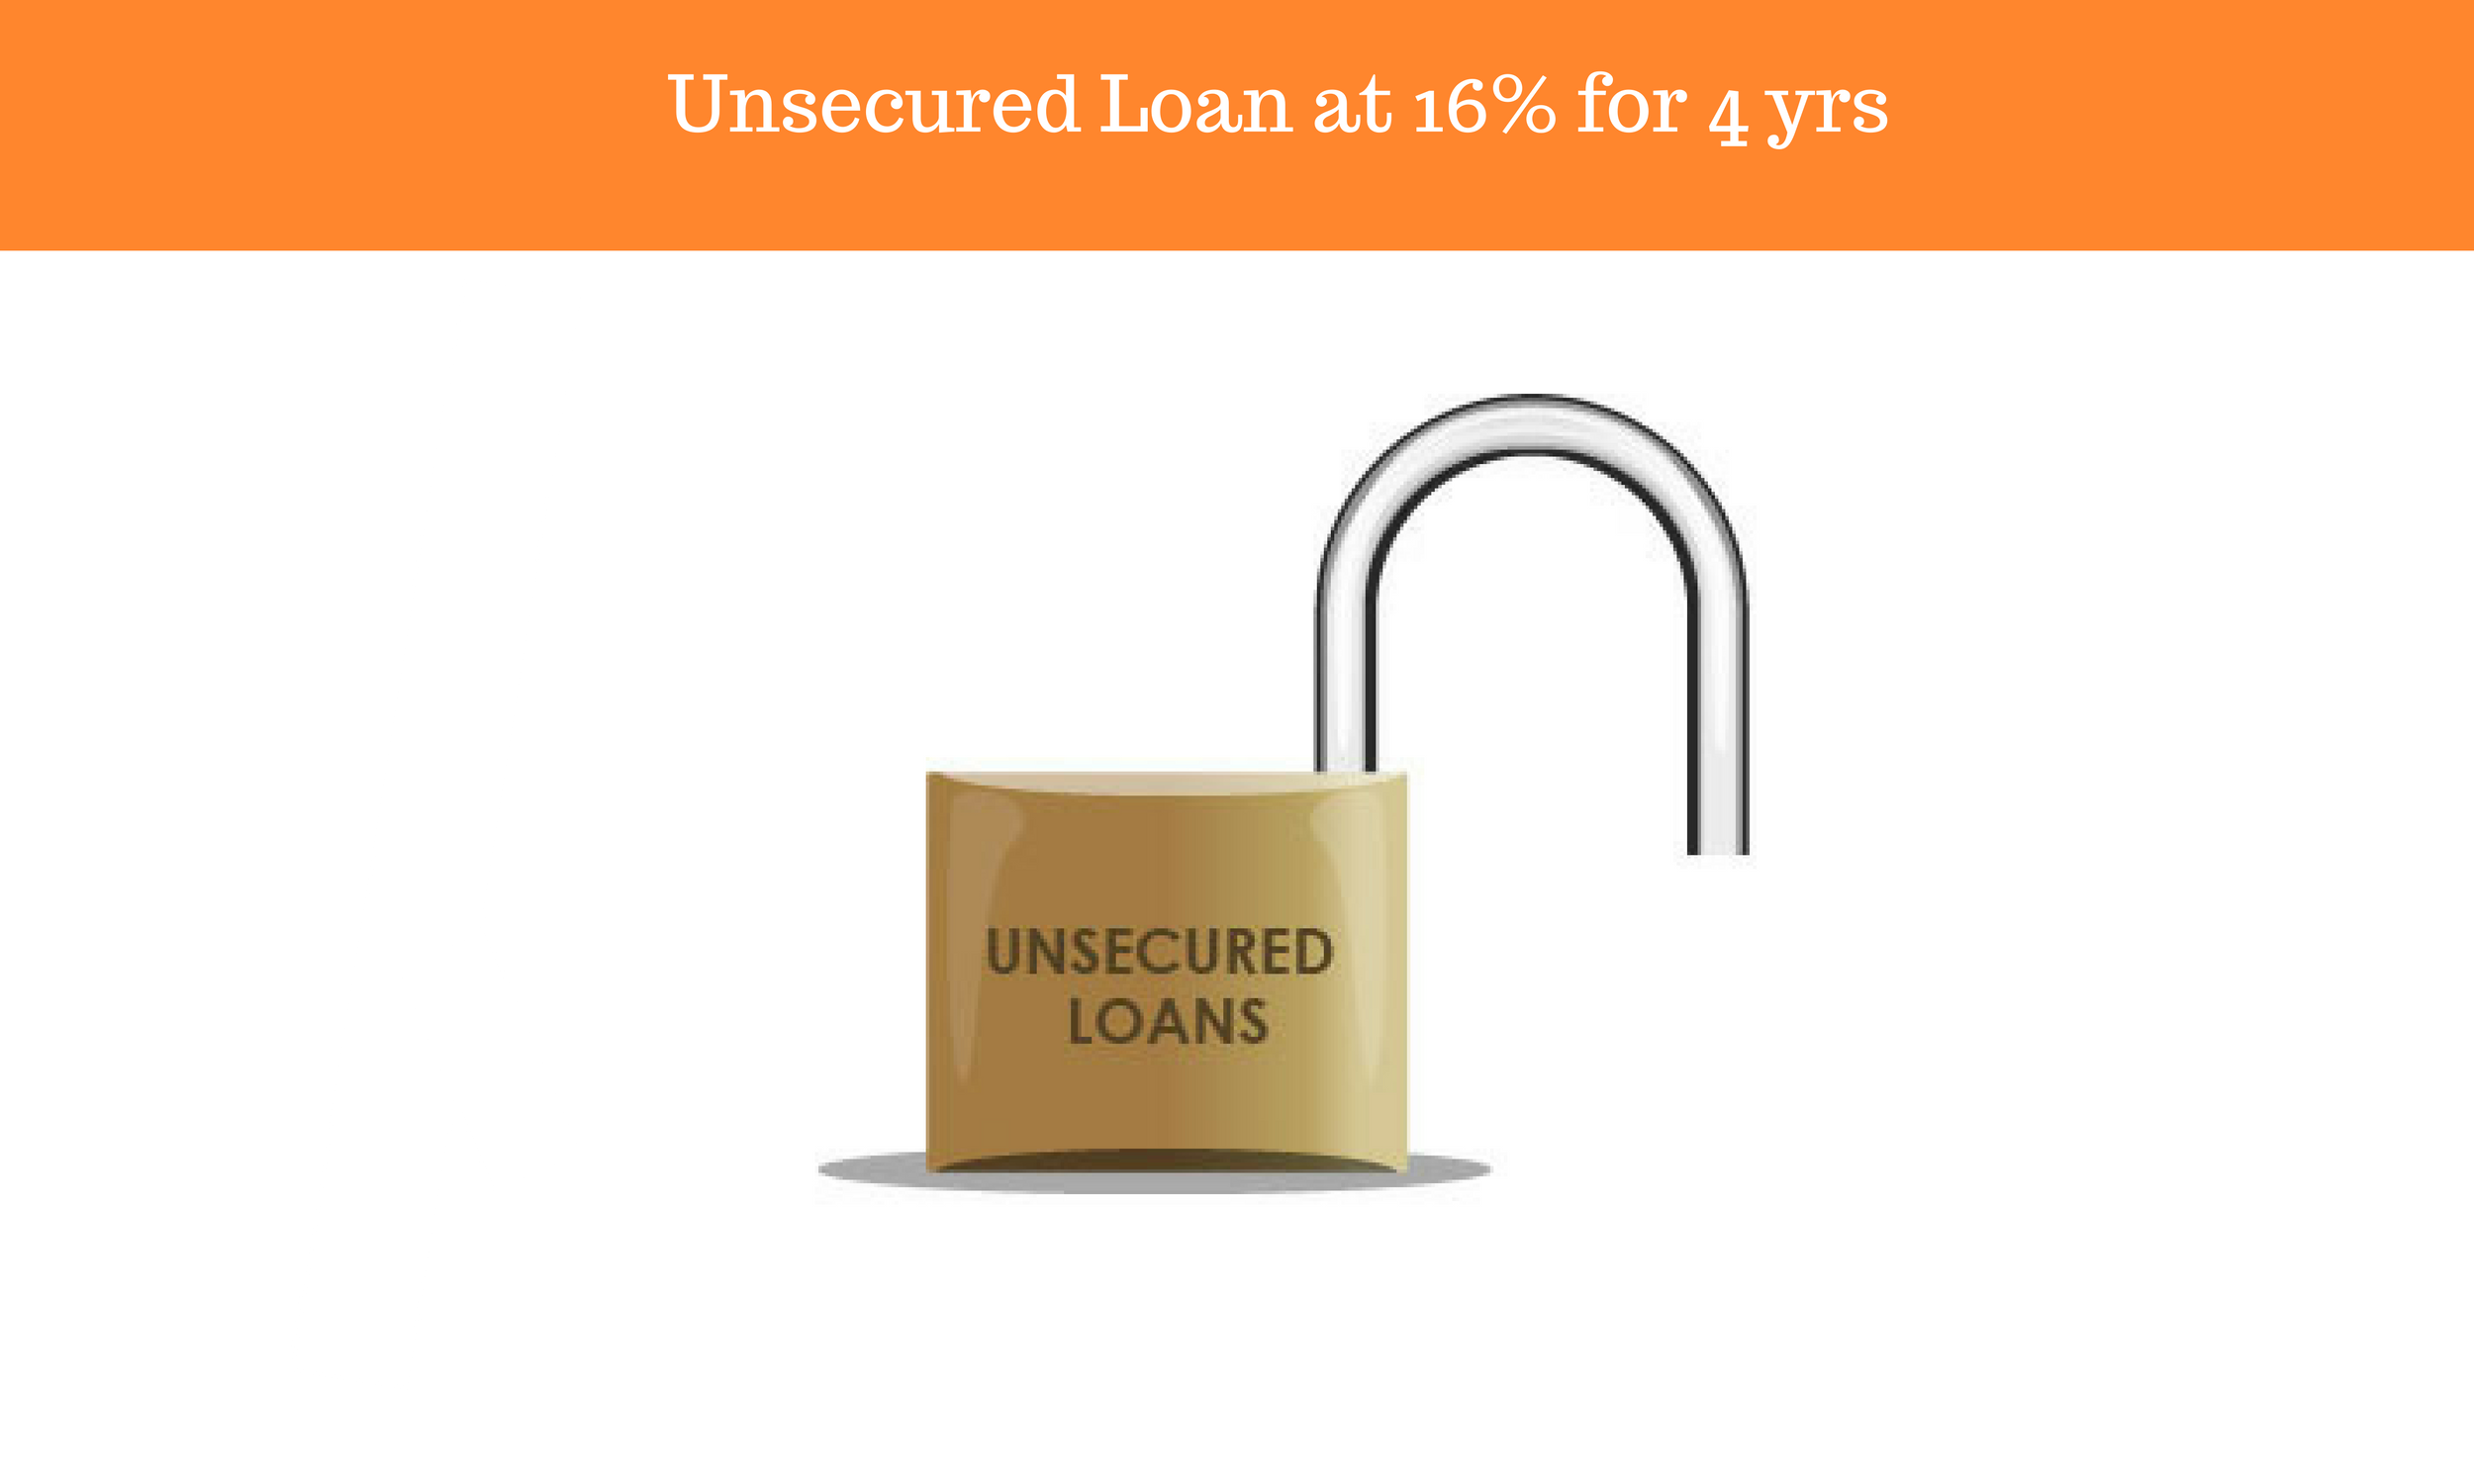 Unsecured Loan at 16% for 4 years